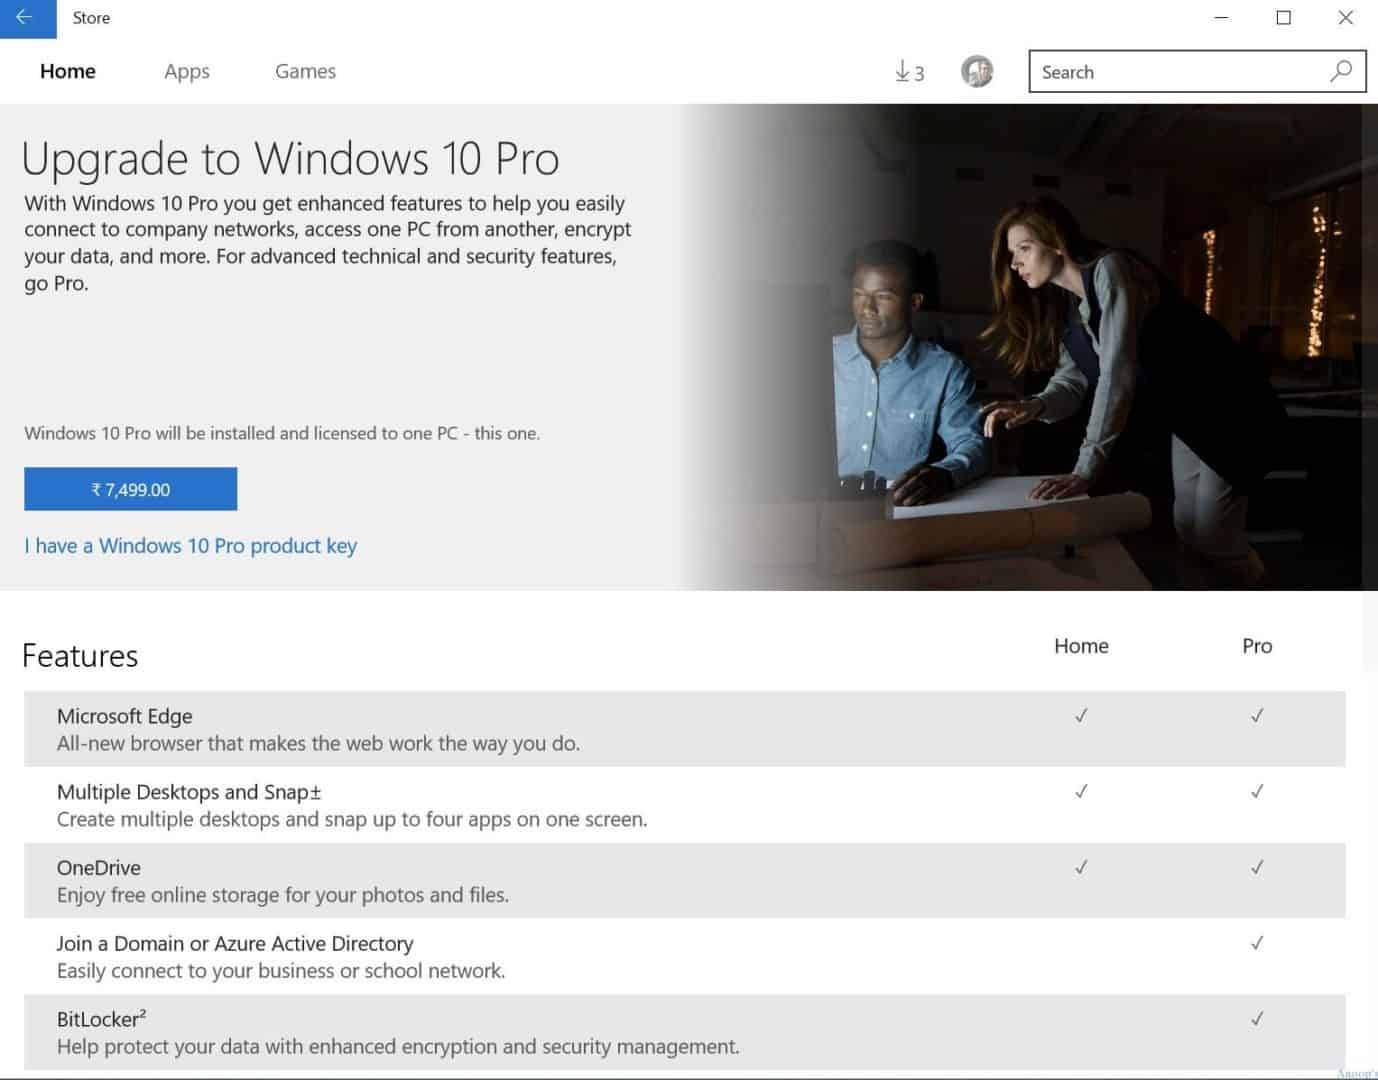 windows 10 home vs pro for business